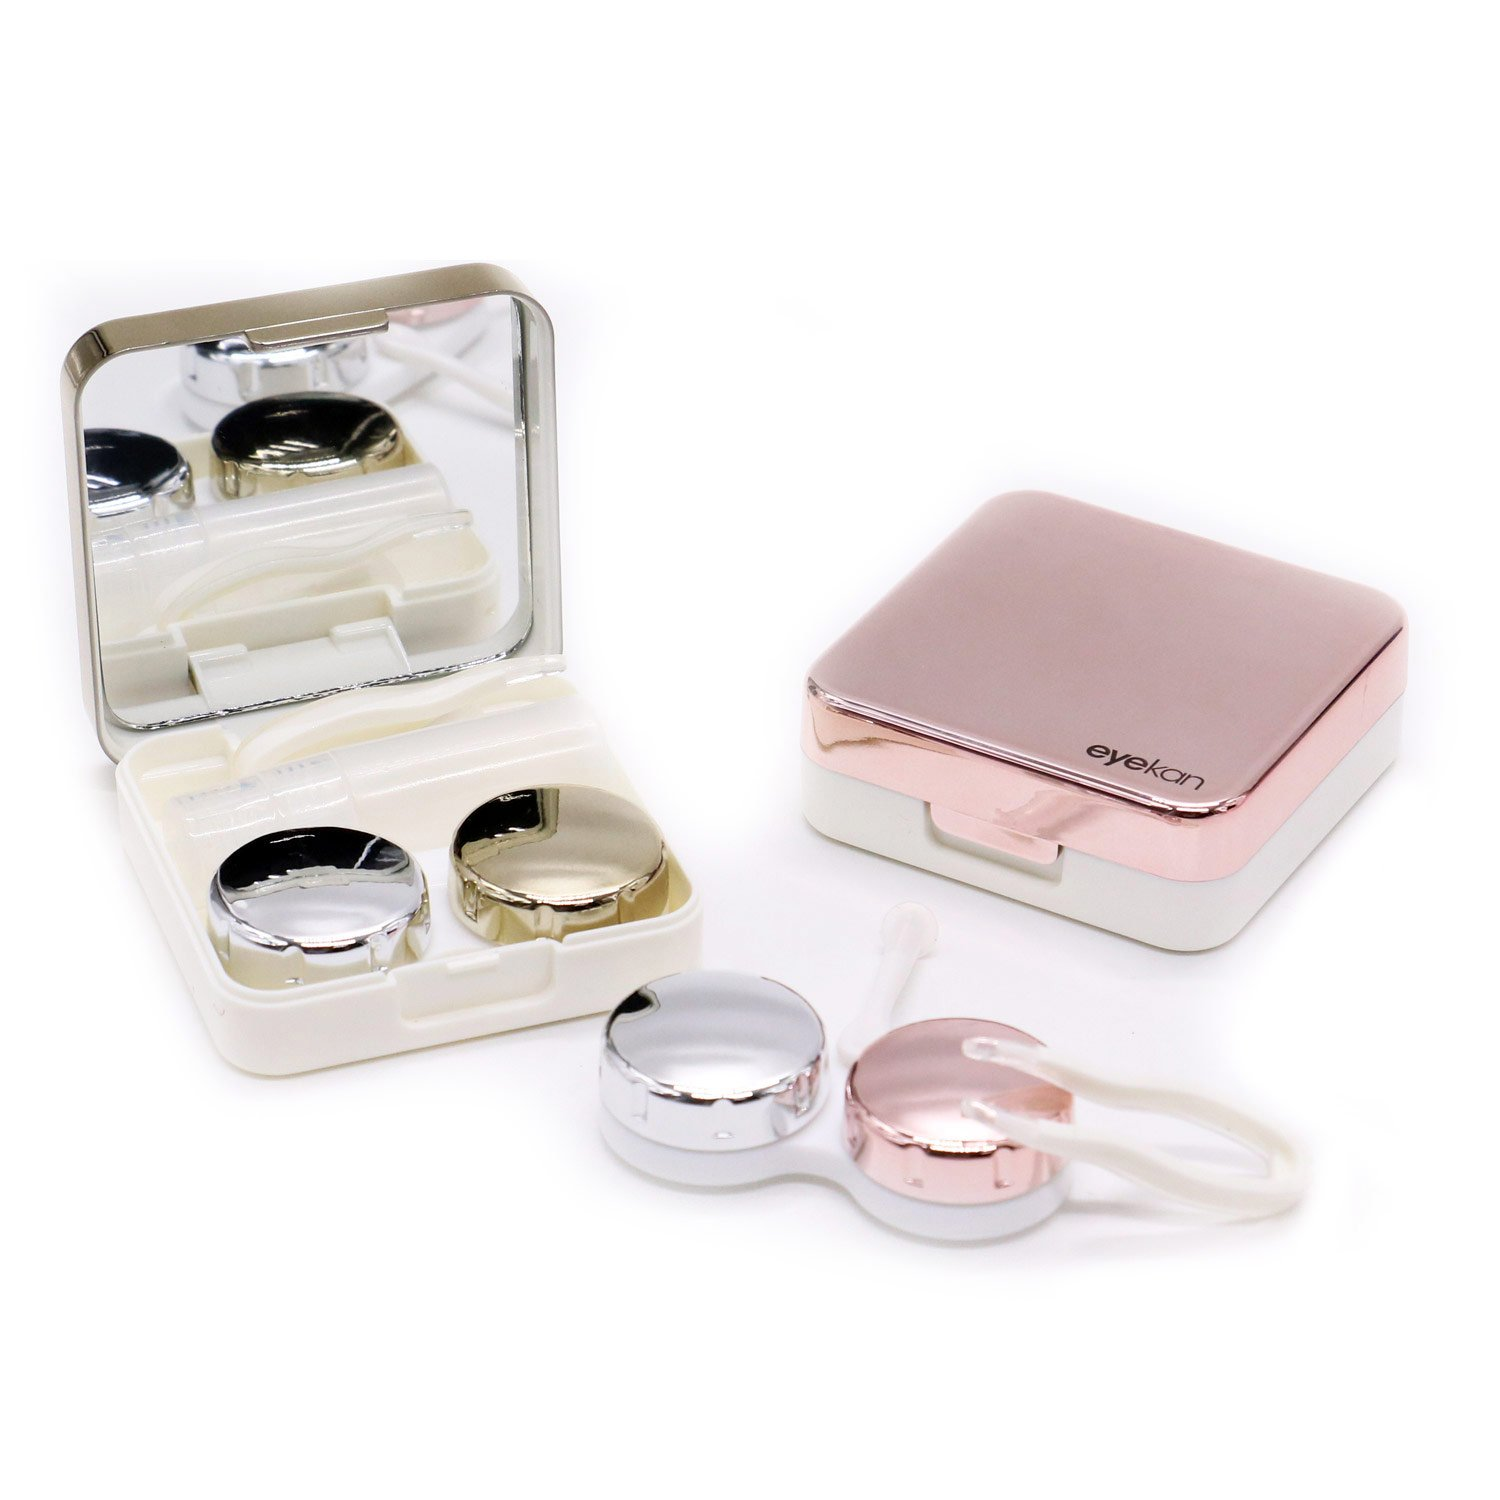 HUELE 2 PCS Contact Lens Travel Case Box Kit Set Holder With Mirror (Rose Gold & Gold) 4332660672